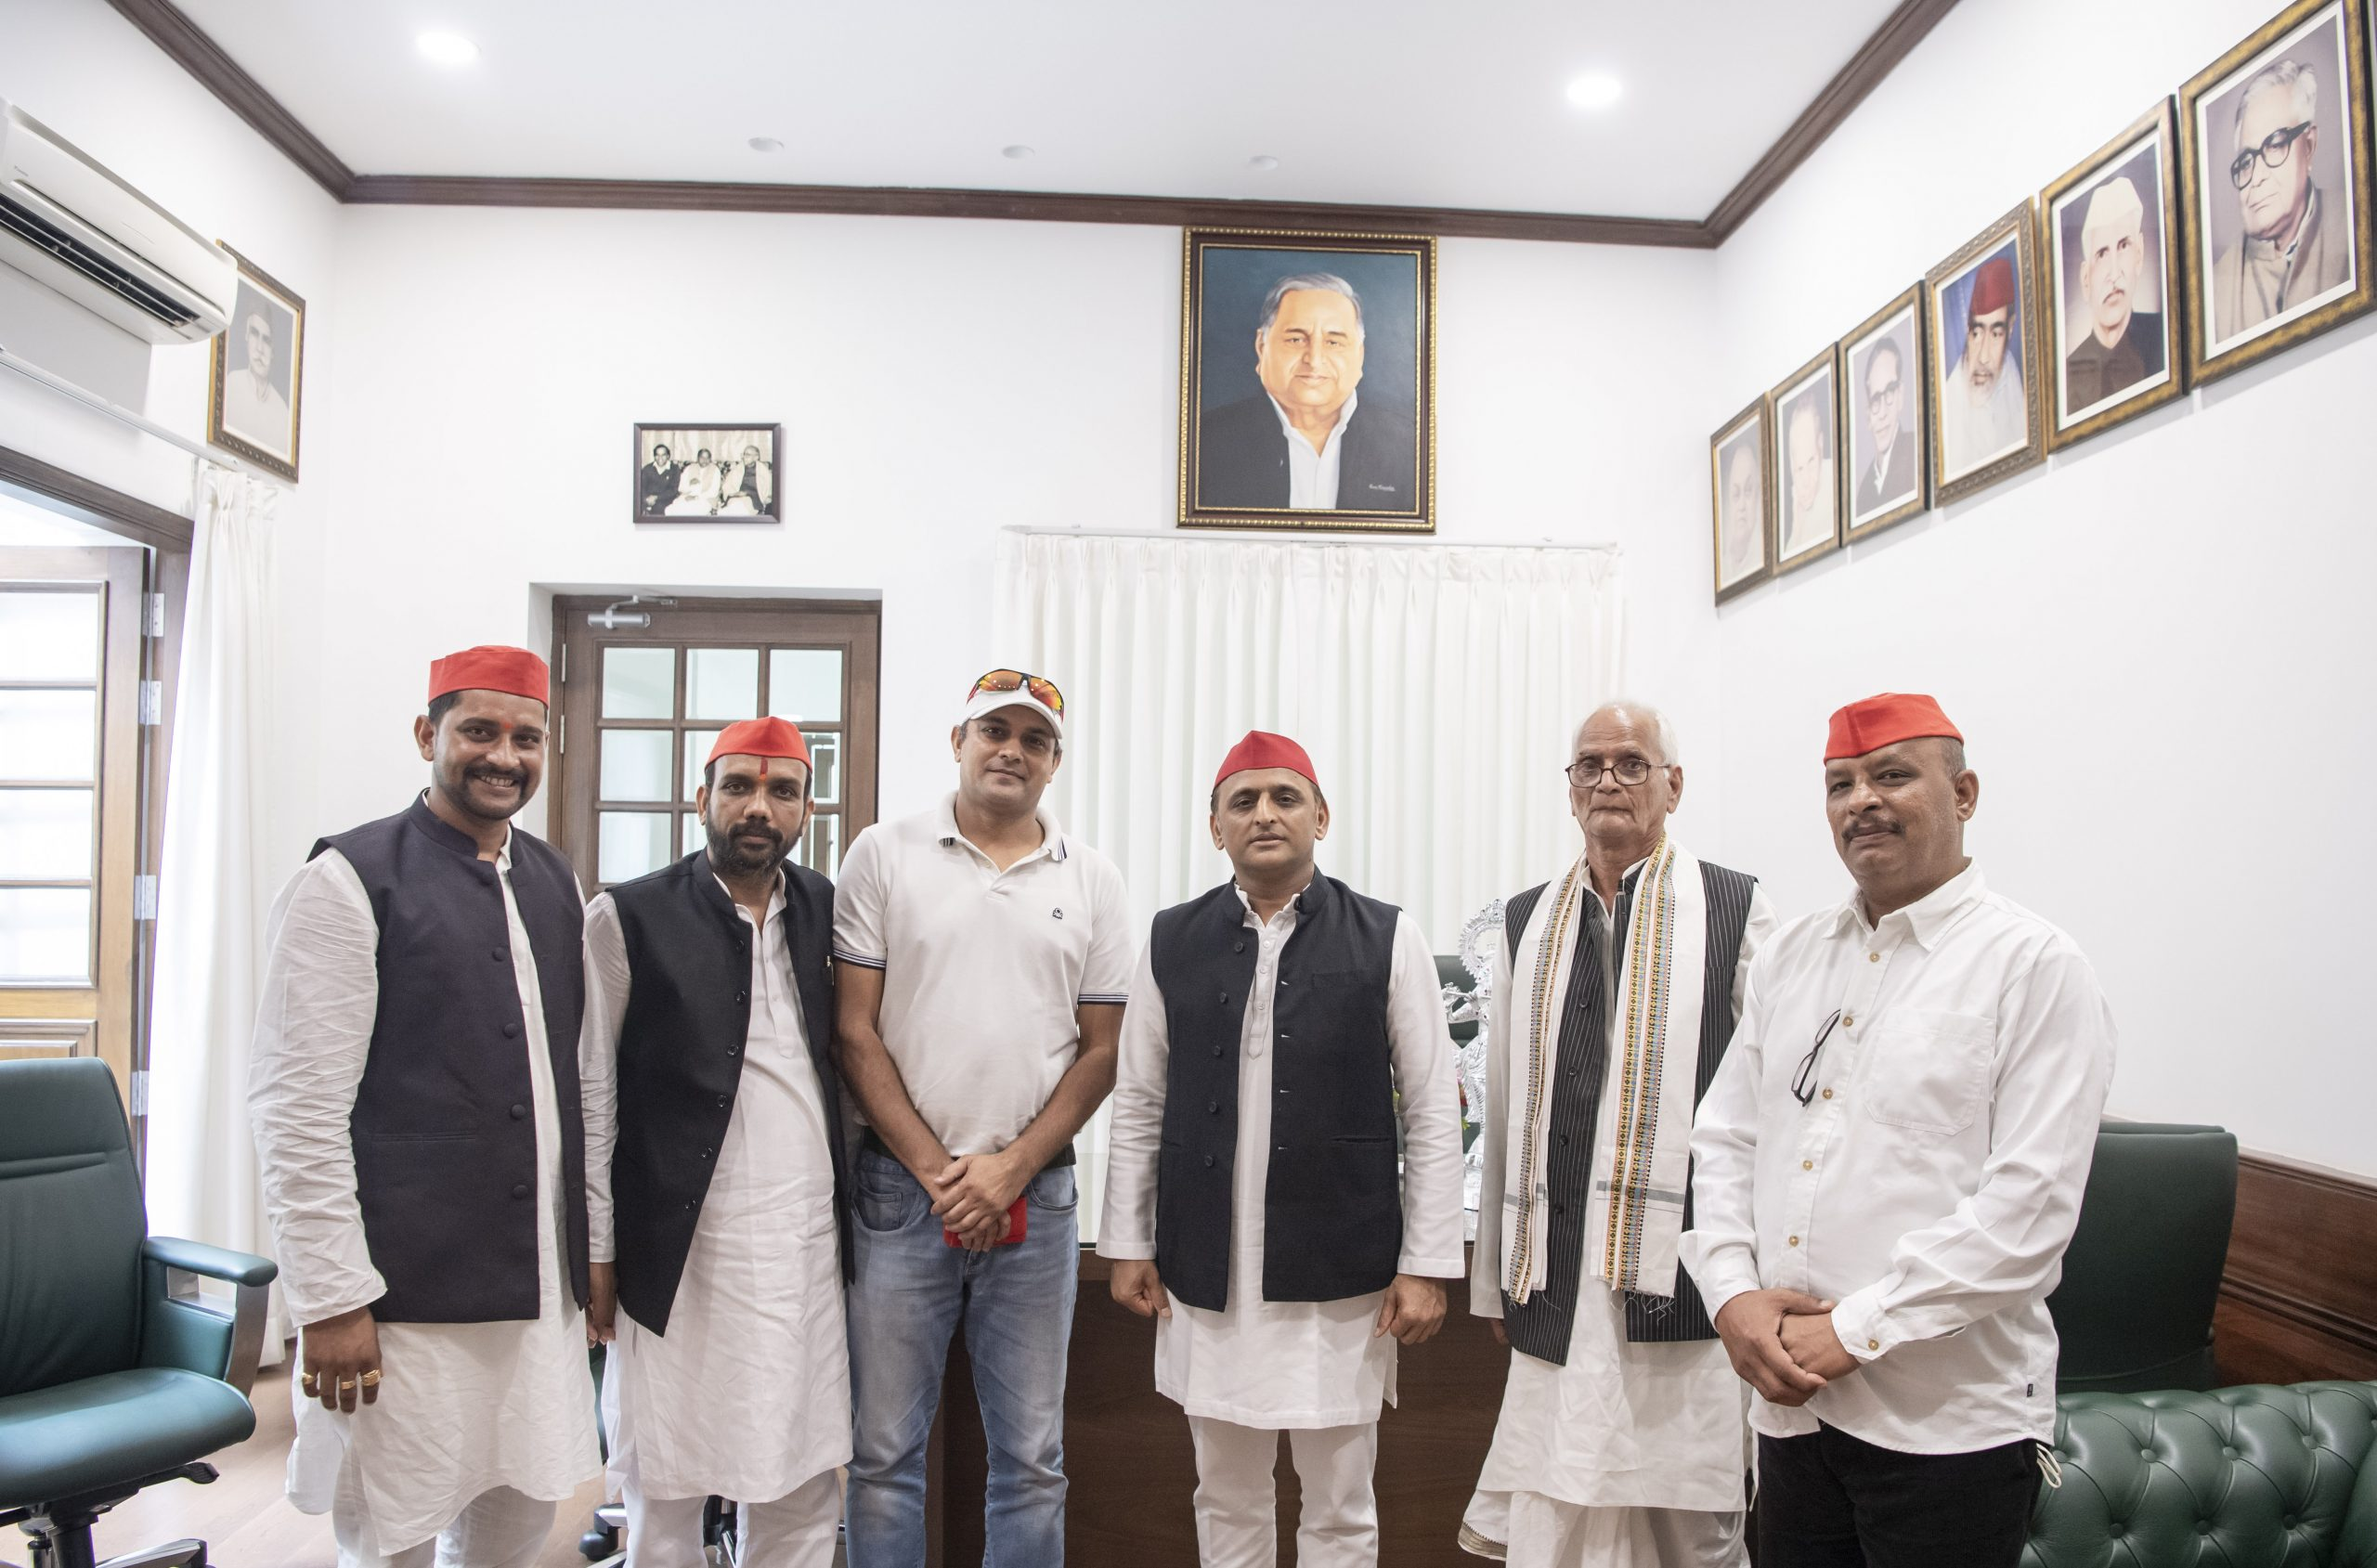 Samajwadi Party organization Mission 2022 continues expand